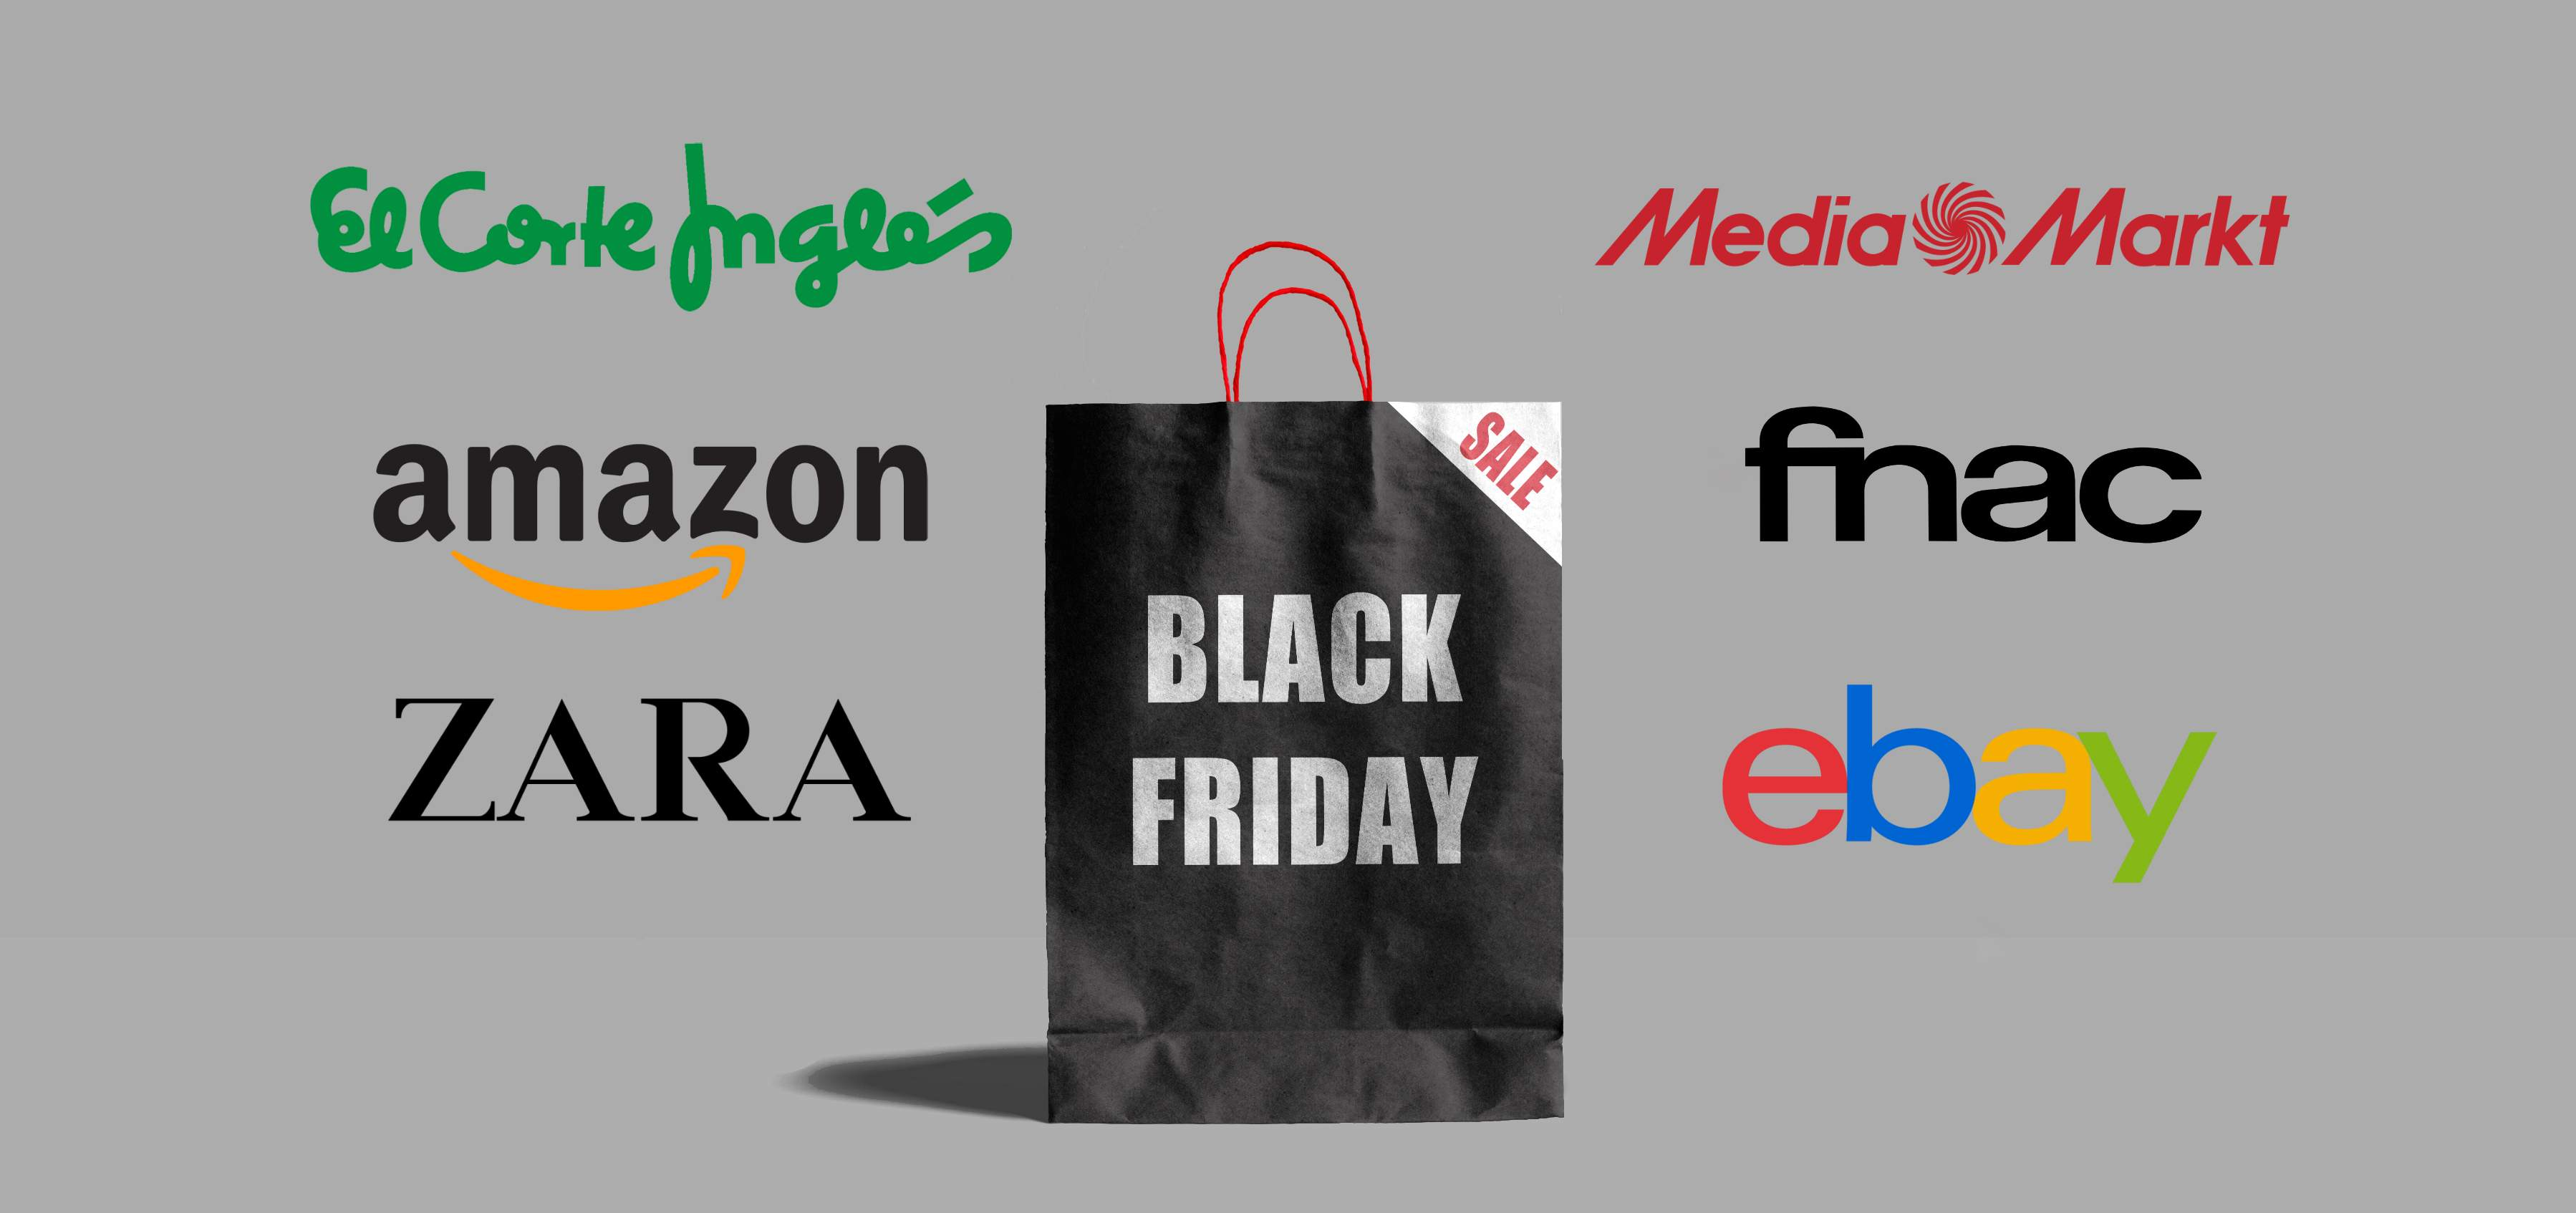 Black Friday 2017: ofertas en Zara, Amazon, El Corte Inglés